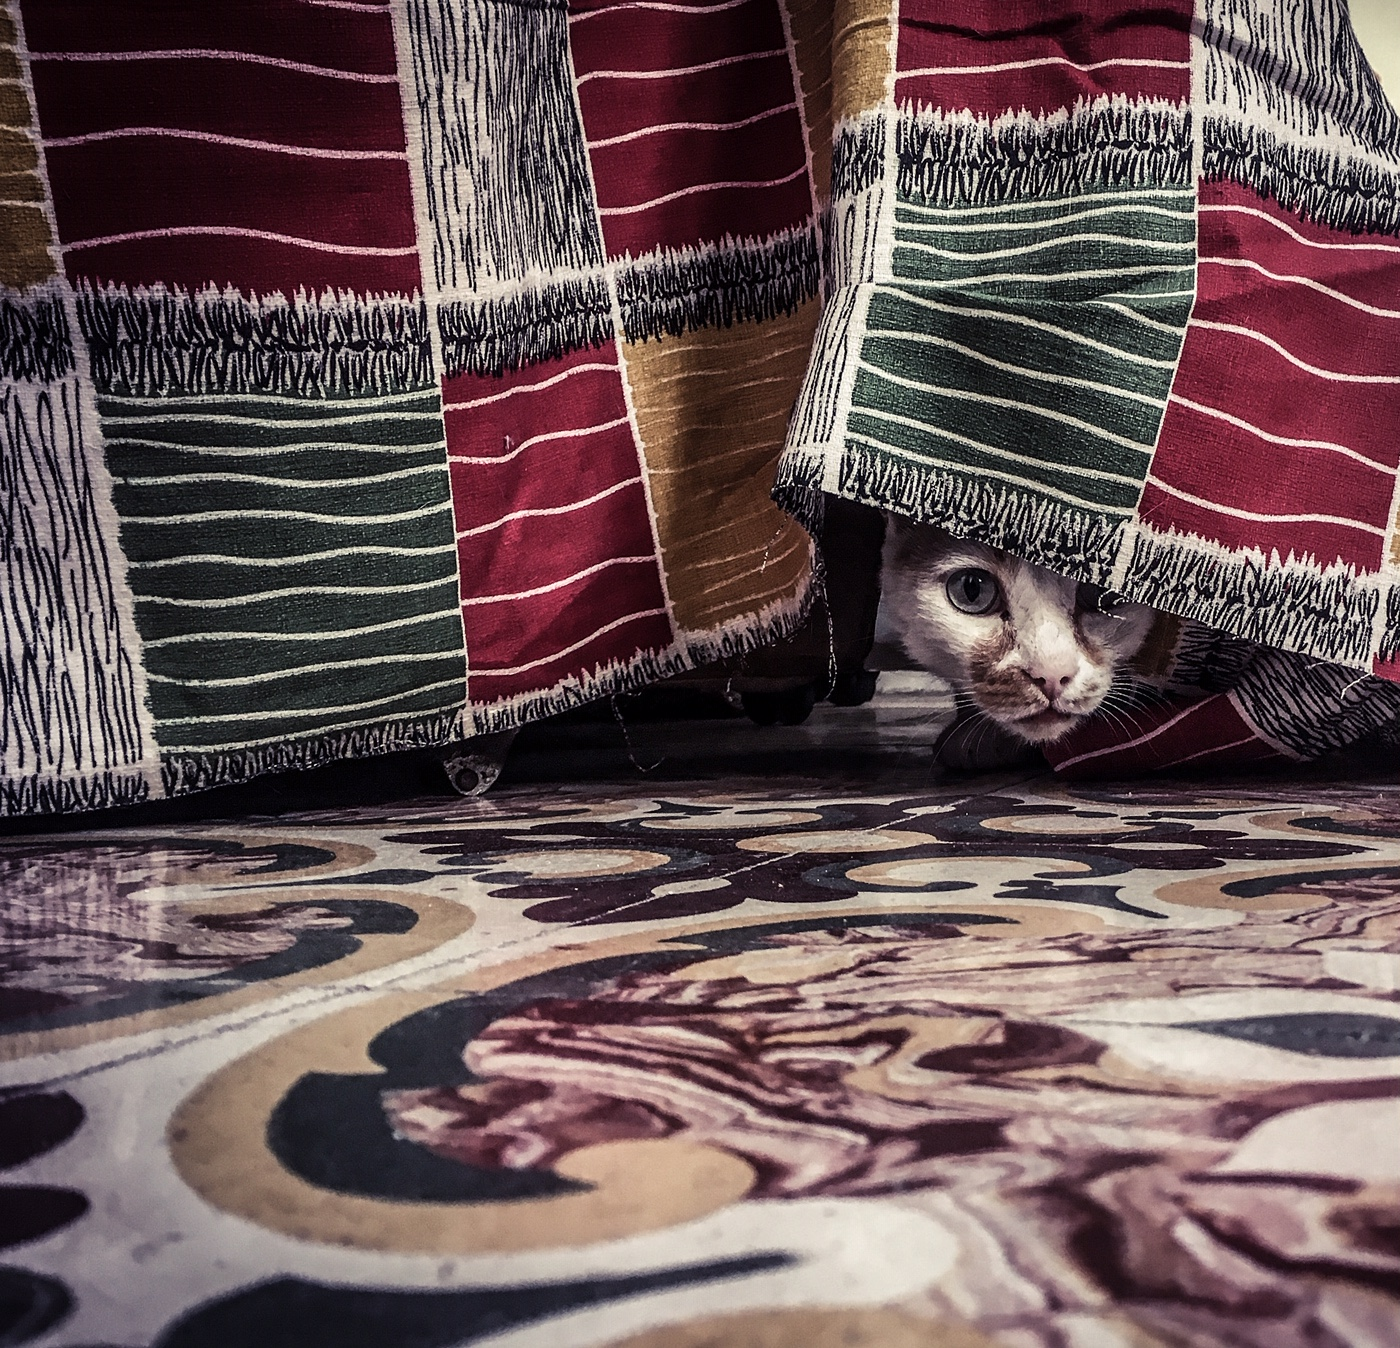 The Stray Cats of Malta- A white and ginger cat peeps out from under a chair, covered in fabric, with Maltese tiles on the floor. Image ©Helen Jones-Florio